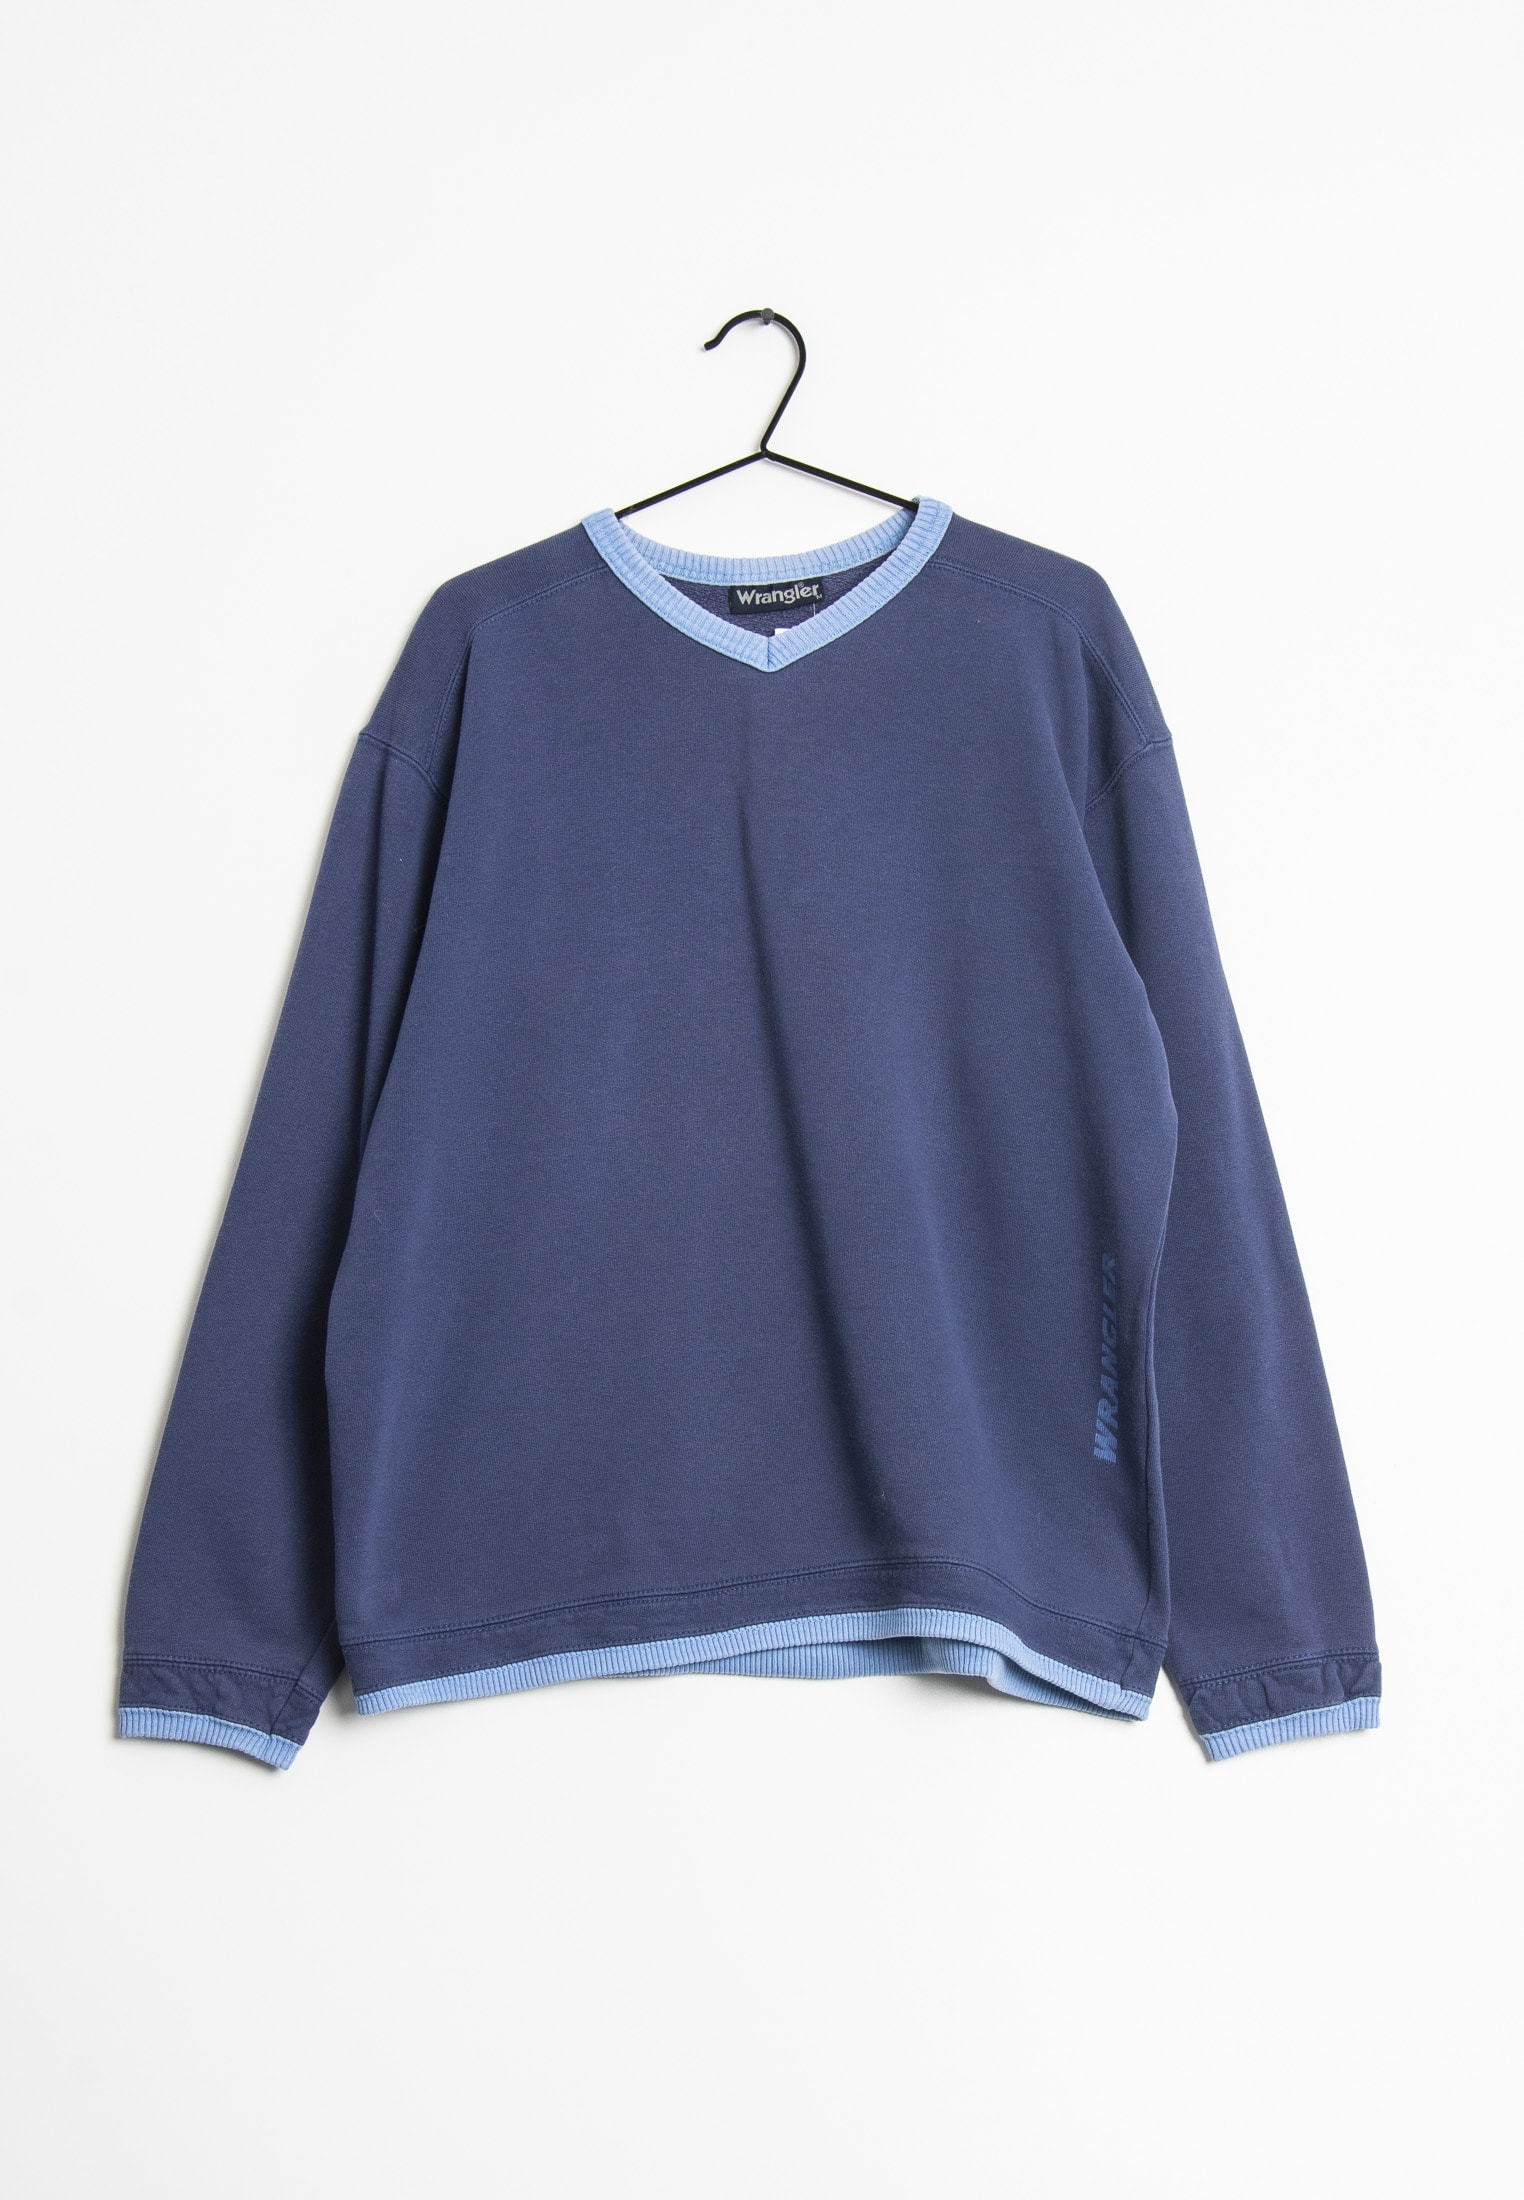 Wrangler Sweat / Fleece Blau Gr.M